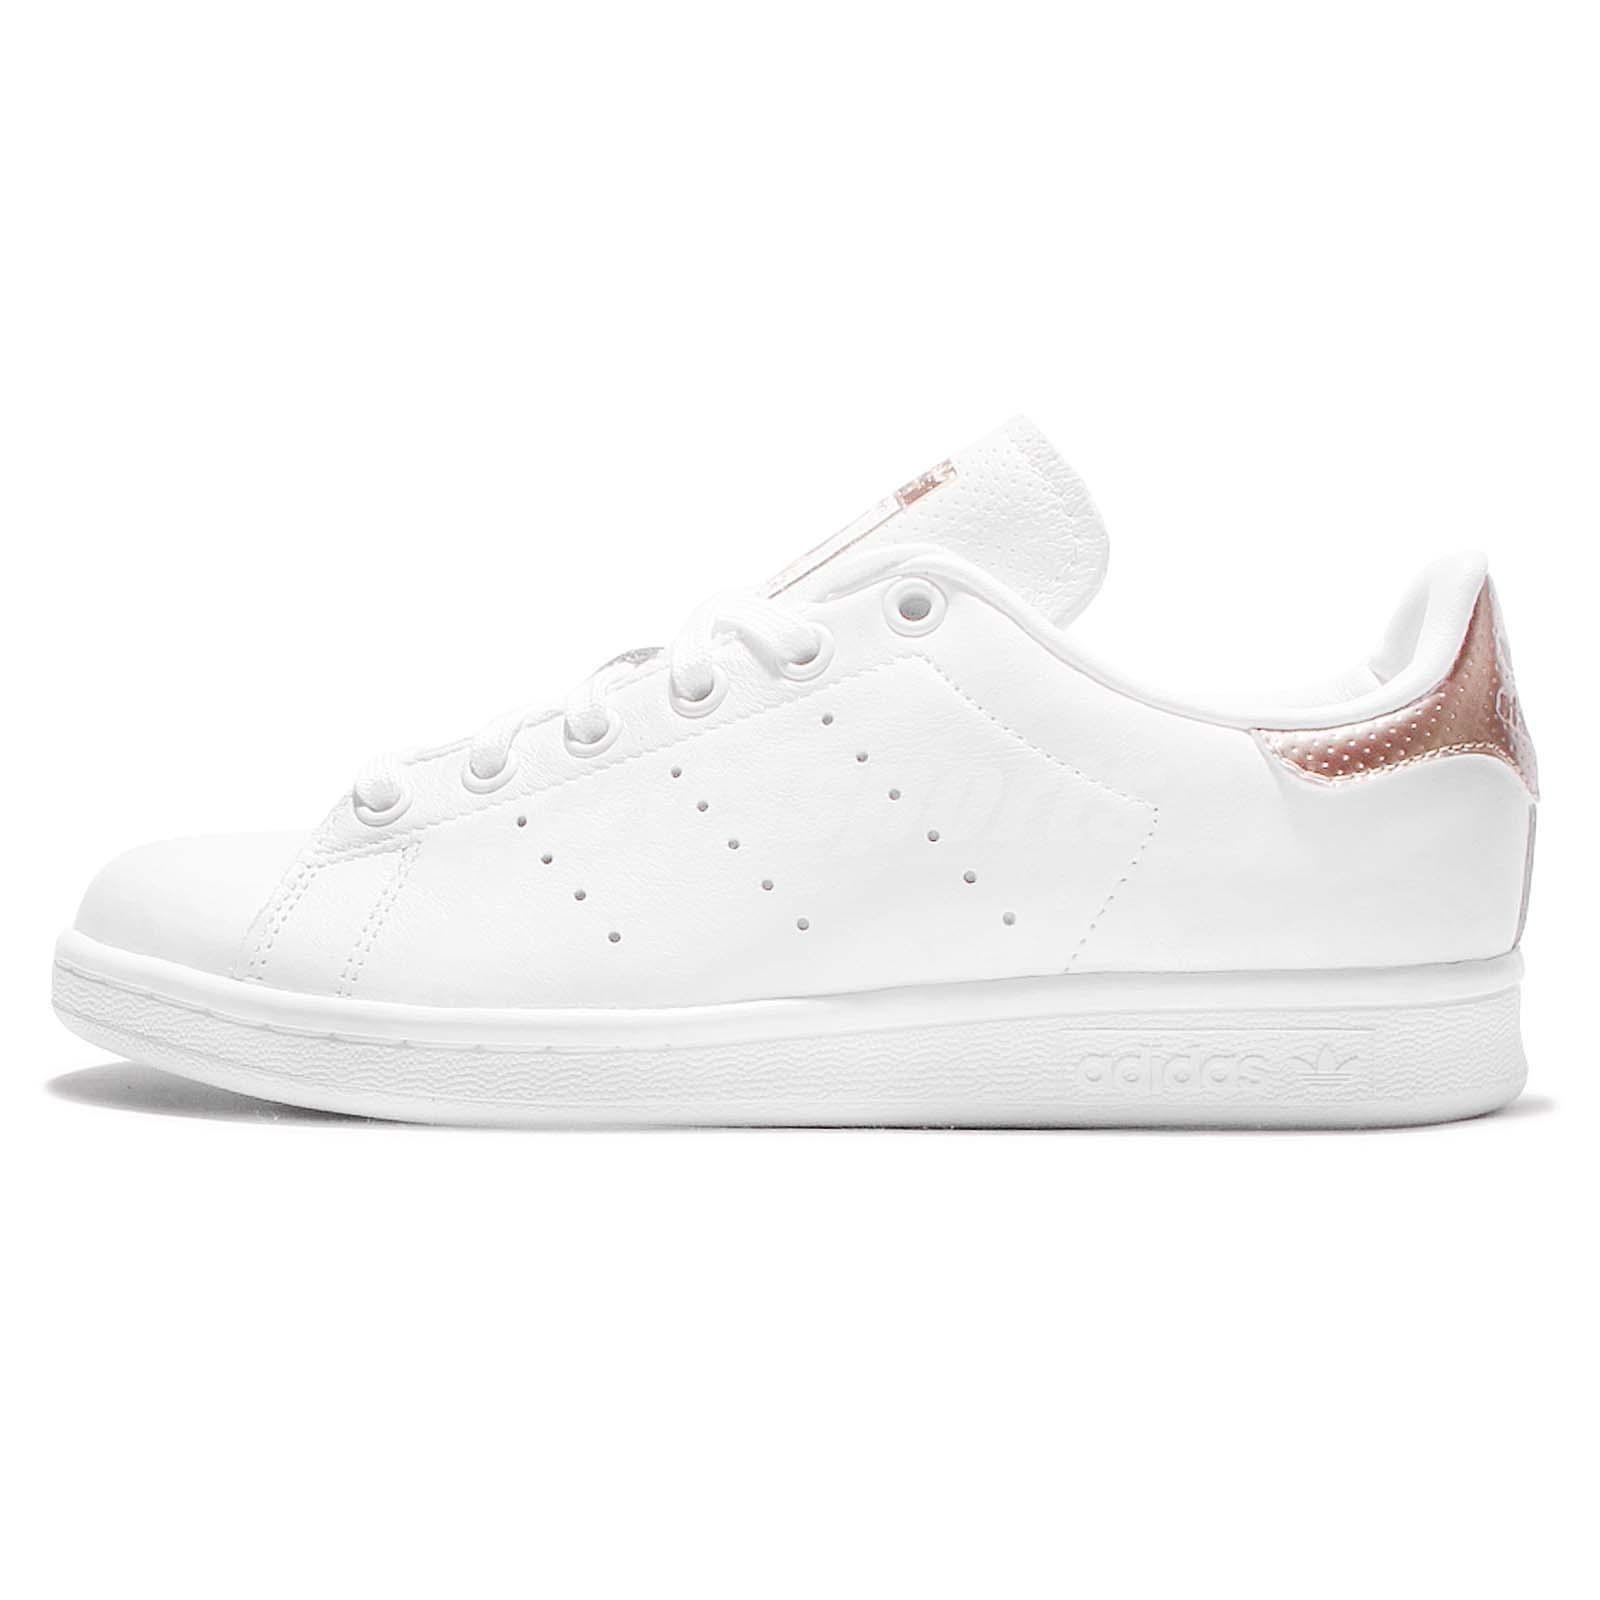 adidas originals stan smith w rose gold white leather women classic shoes bb1434. Black Bedroom Furniture Sets. Home Design Ideas